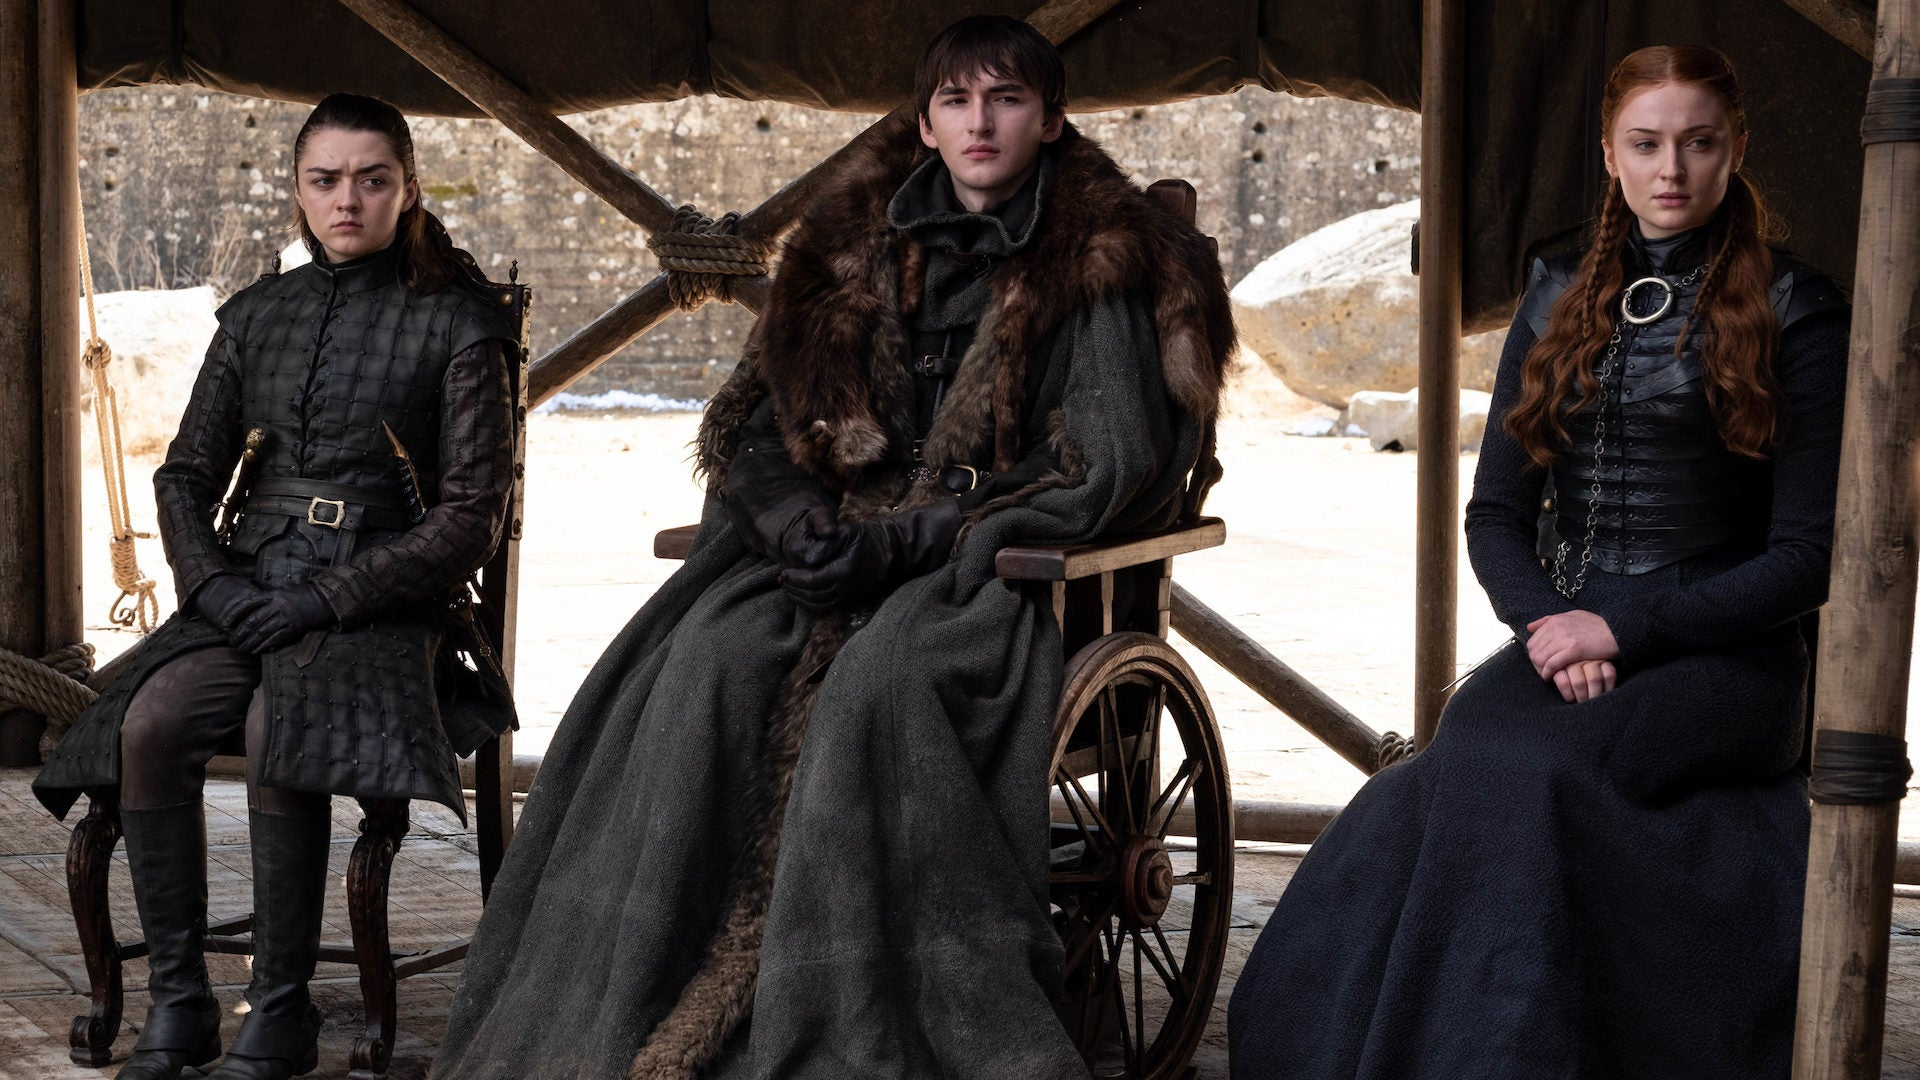 ESSENCE's 'Game of Thrones' Group Chat: The Finale Left Us With More Questions Than Answers